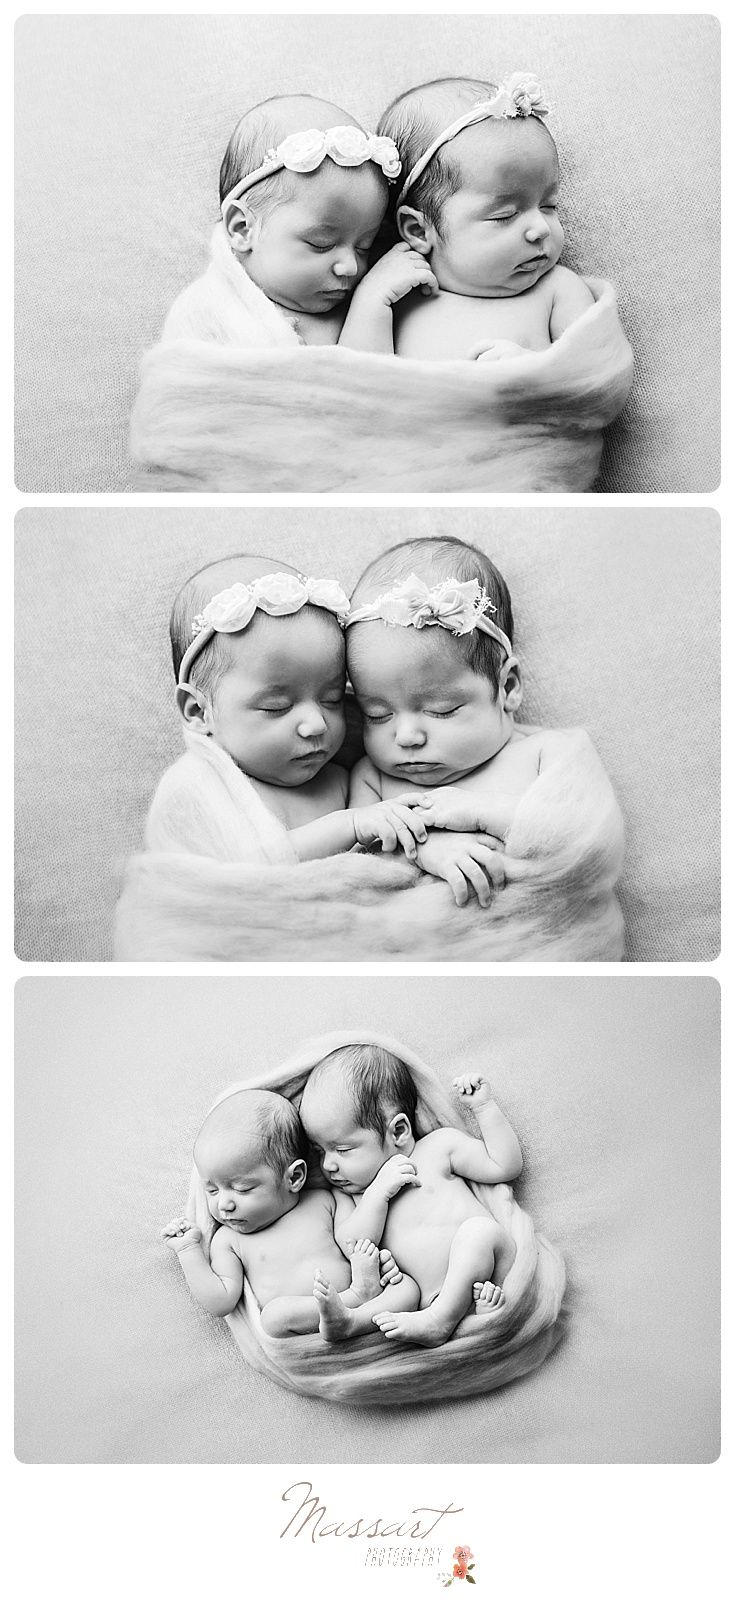 Black and white studio portraits of twin baby girls photographed by massart photography of warwick rhode island www massartphotography com